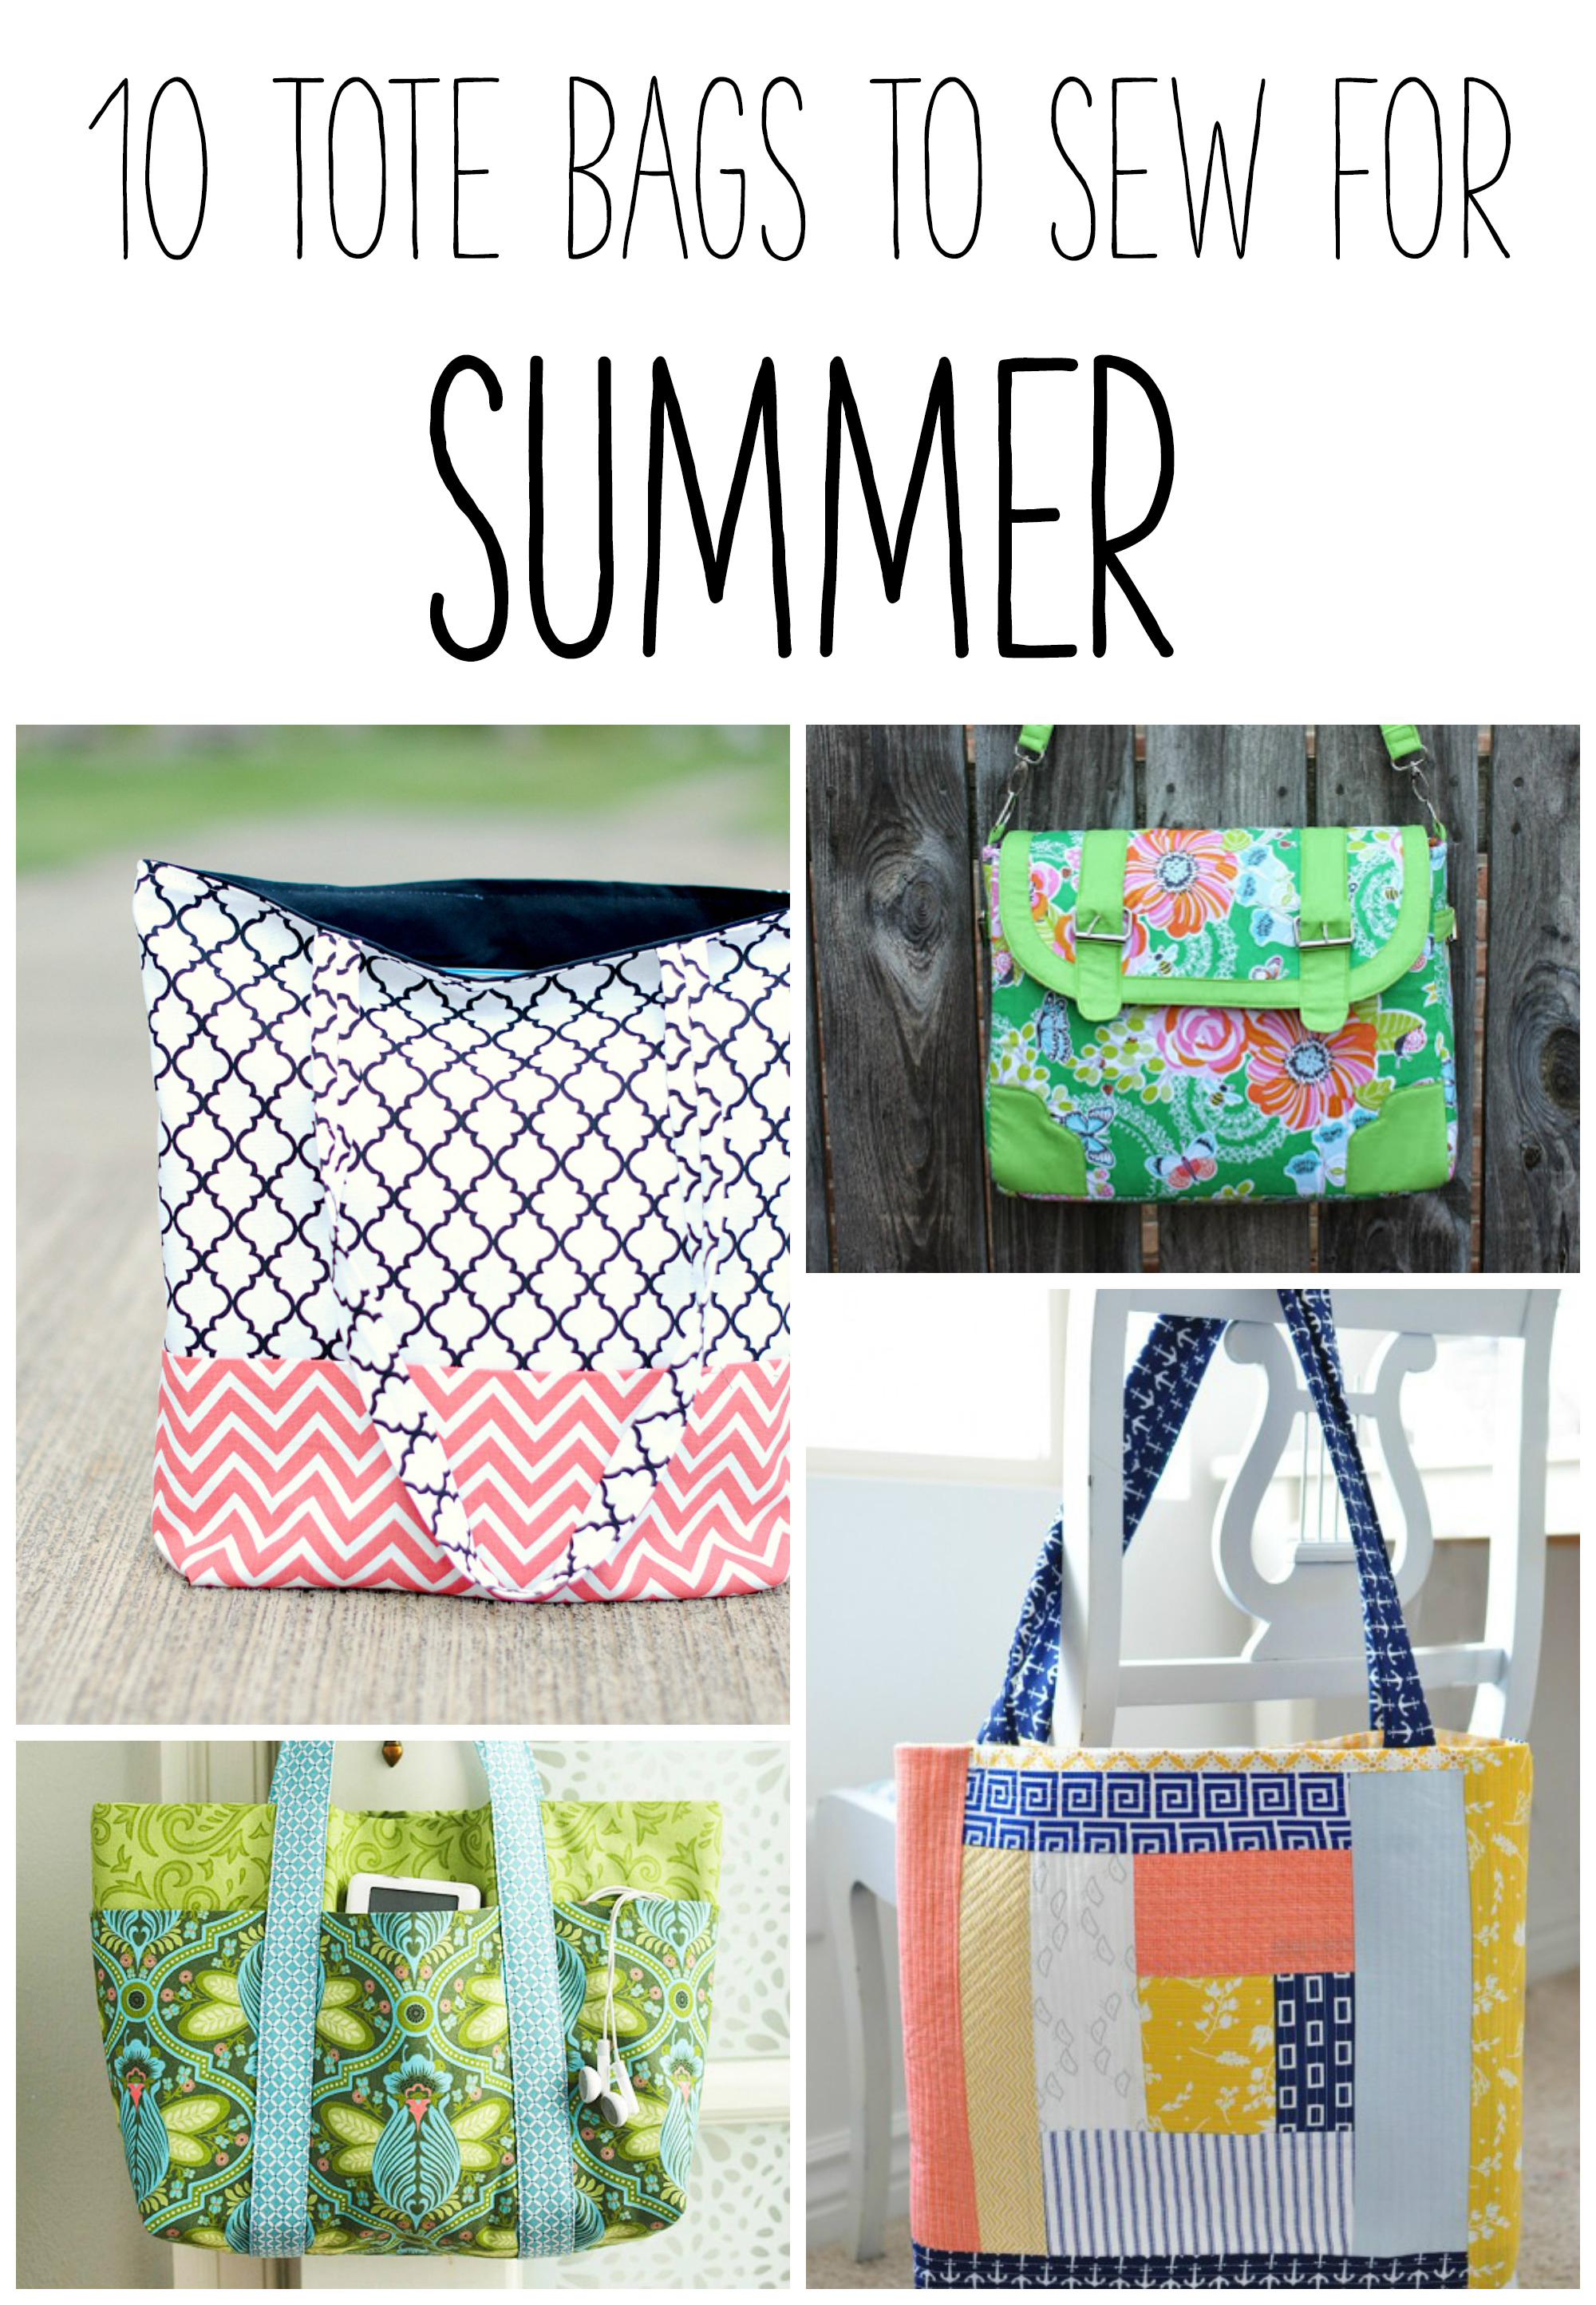 10 Tote Bags to Sew for Summer!